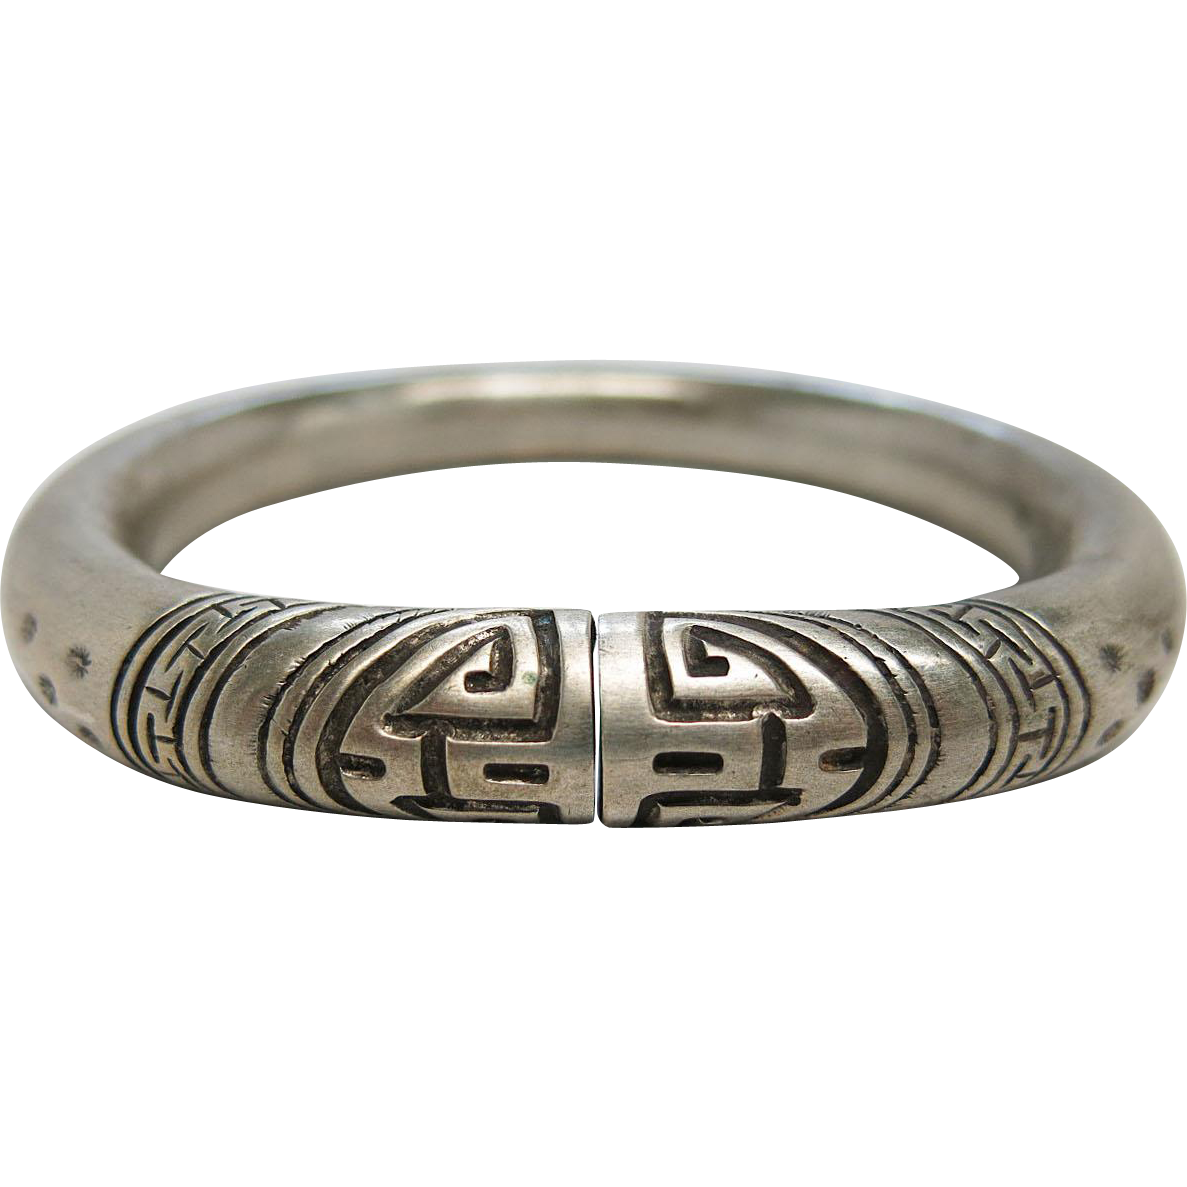 antique silver bangle bracelet from rubylane sold